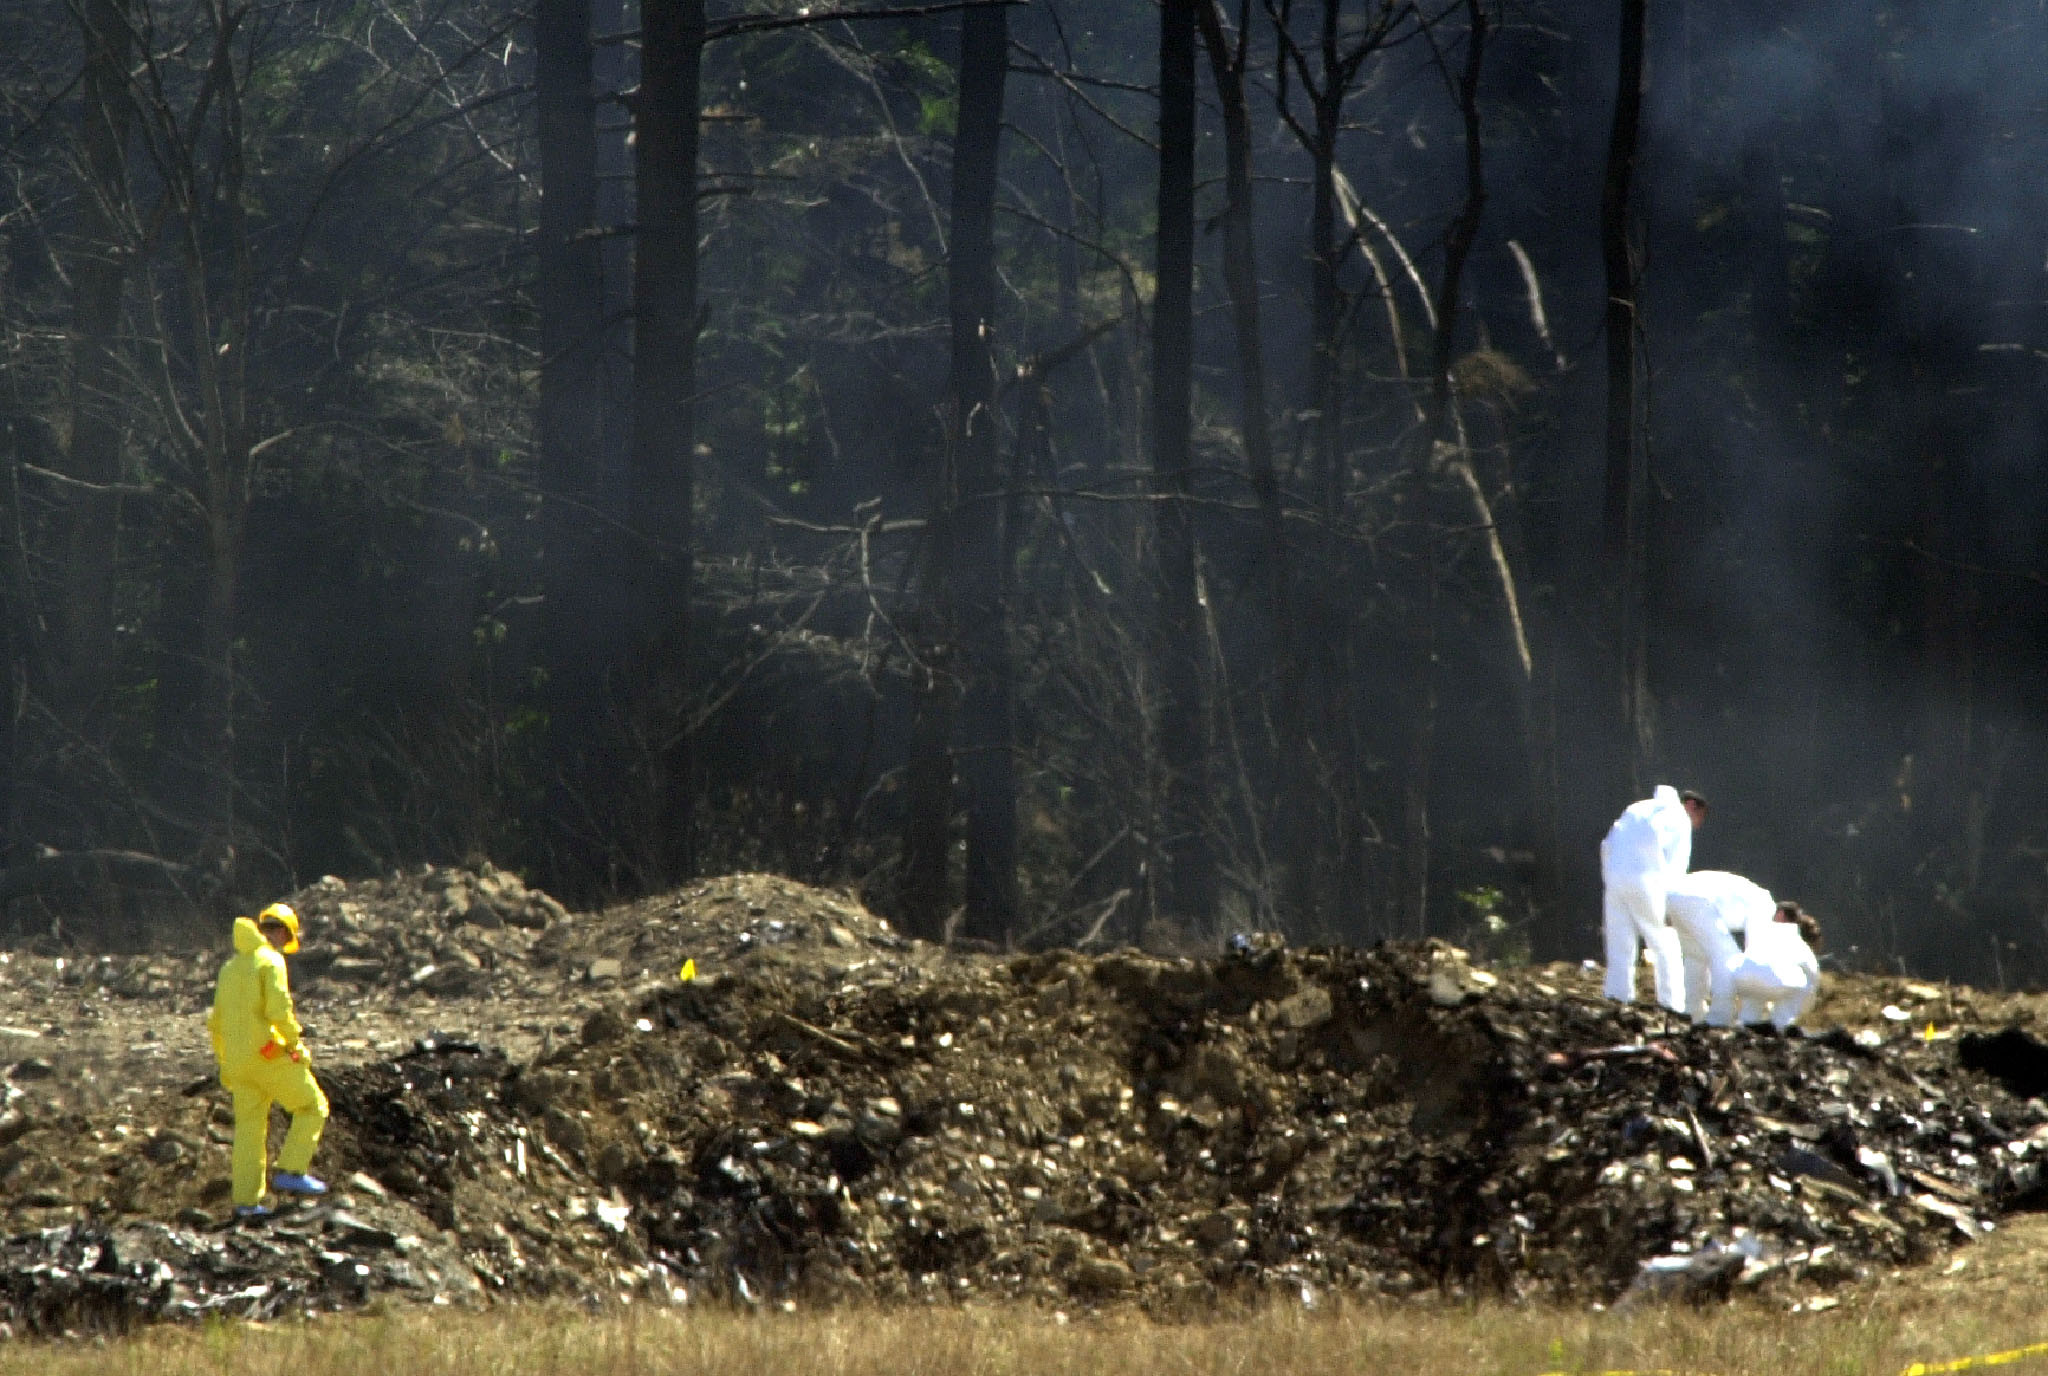 united flight 93 When united flight 93, the fourth plane hijacked in the september 11, 2001  terrorist attacks, crashed into a field near shanksville, pennsylvania, the gash it  left.